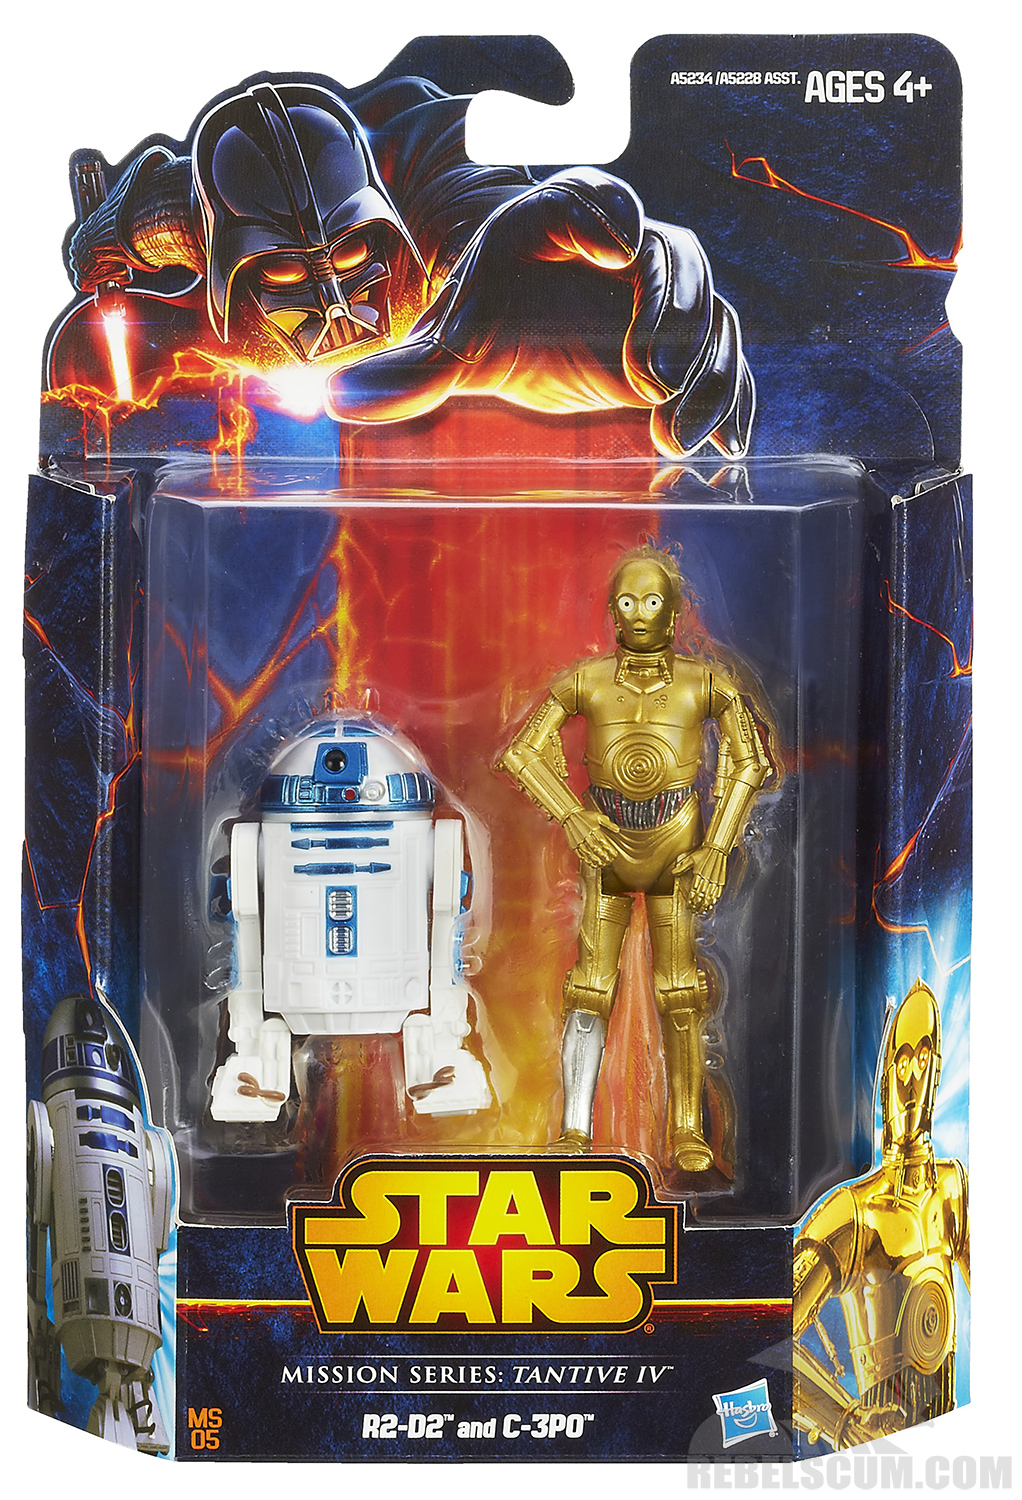 Star Wars Toys Hasbro : Stinny s toy action figure news network for